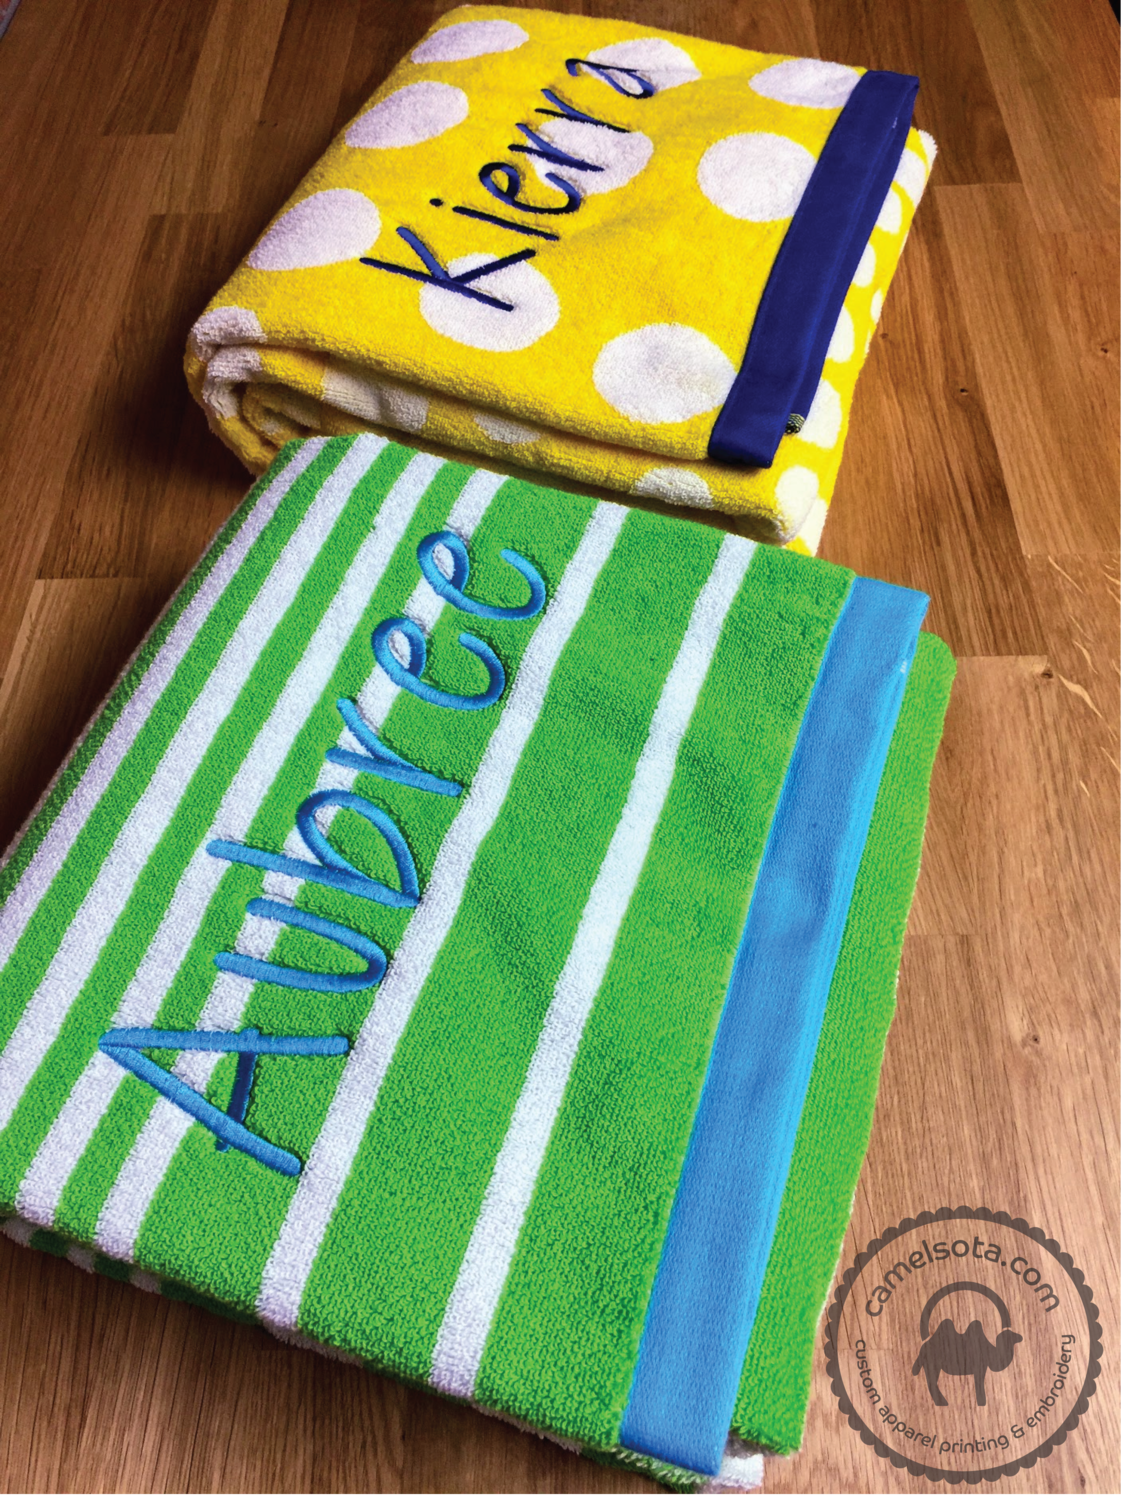 """Name Embroidered Extra Large Resort Beach Towel, Charisma Brand 35"""" x 70"""", Seasonal Item - Limited Quantity"""